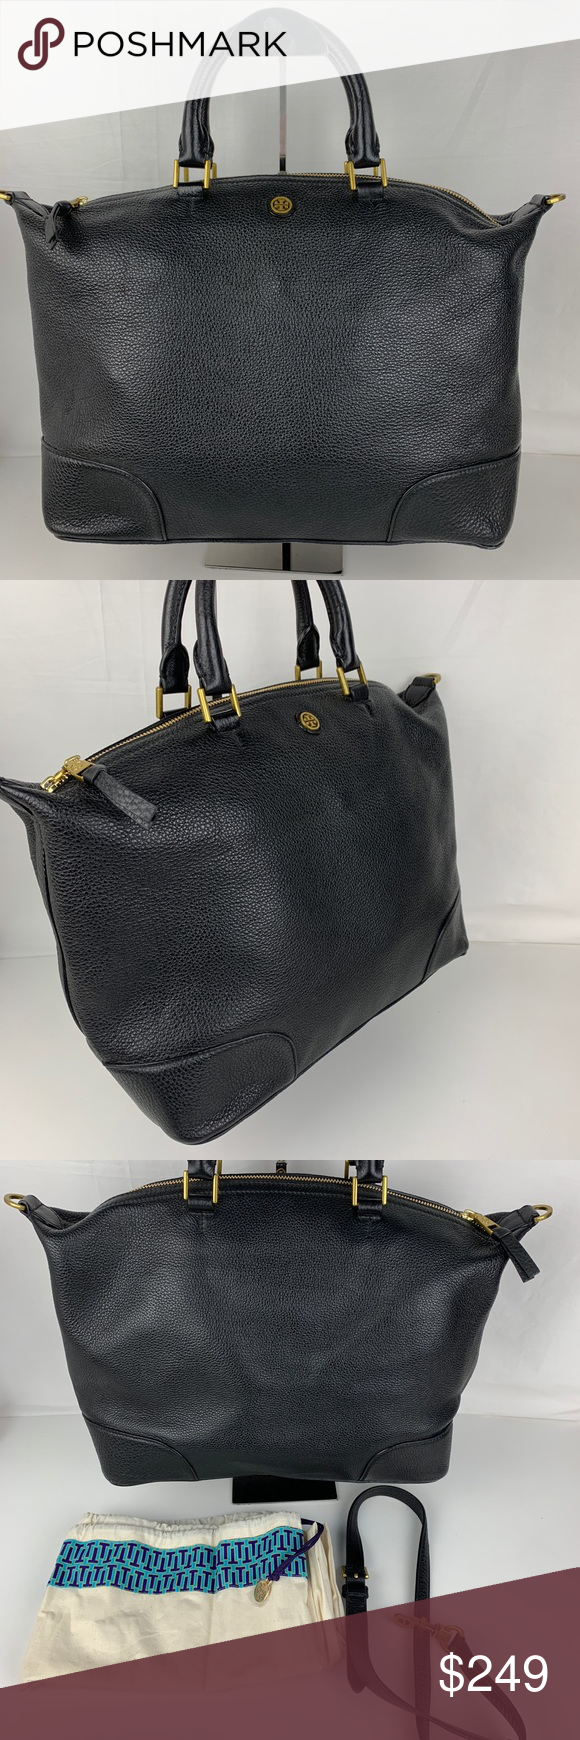 979e977062f Tory Burch Frances Leather Satchel 11159951 Authentic Tory Burch style  11159951. New